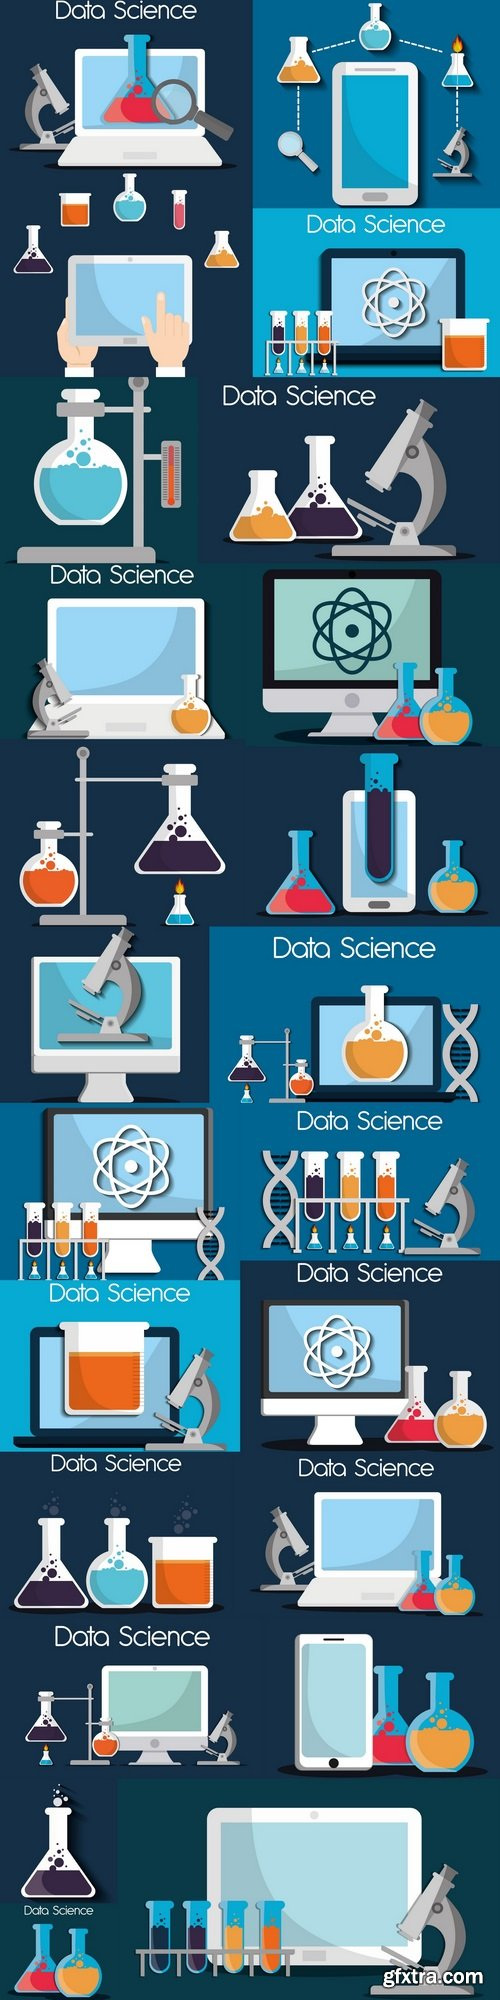 Data Science design